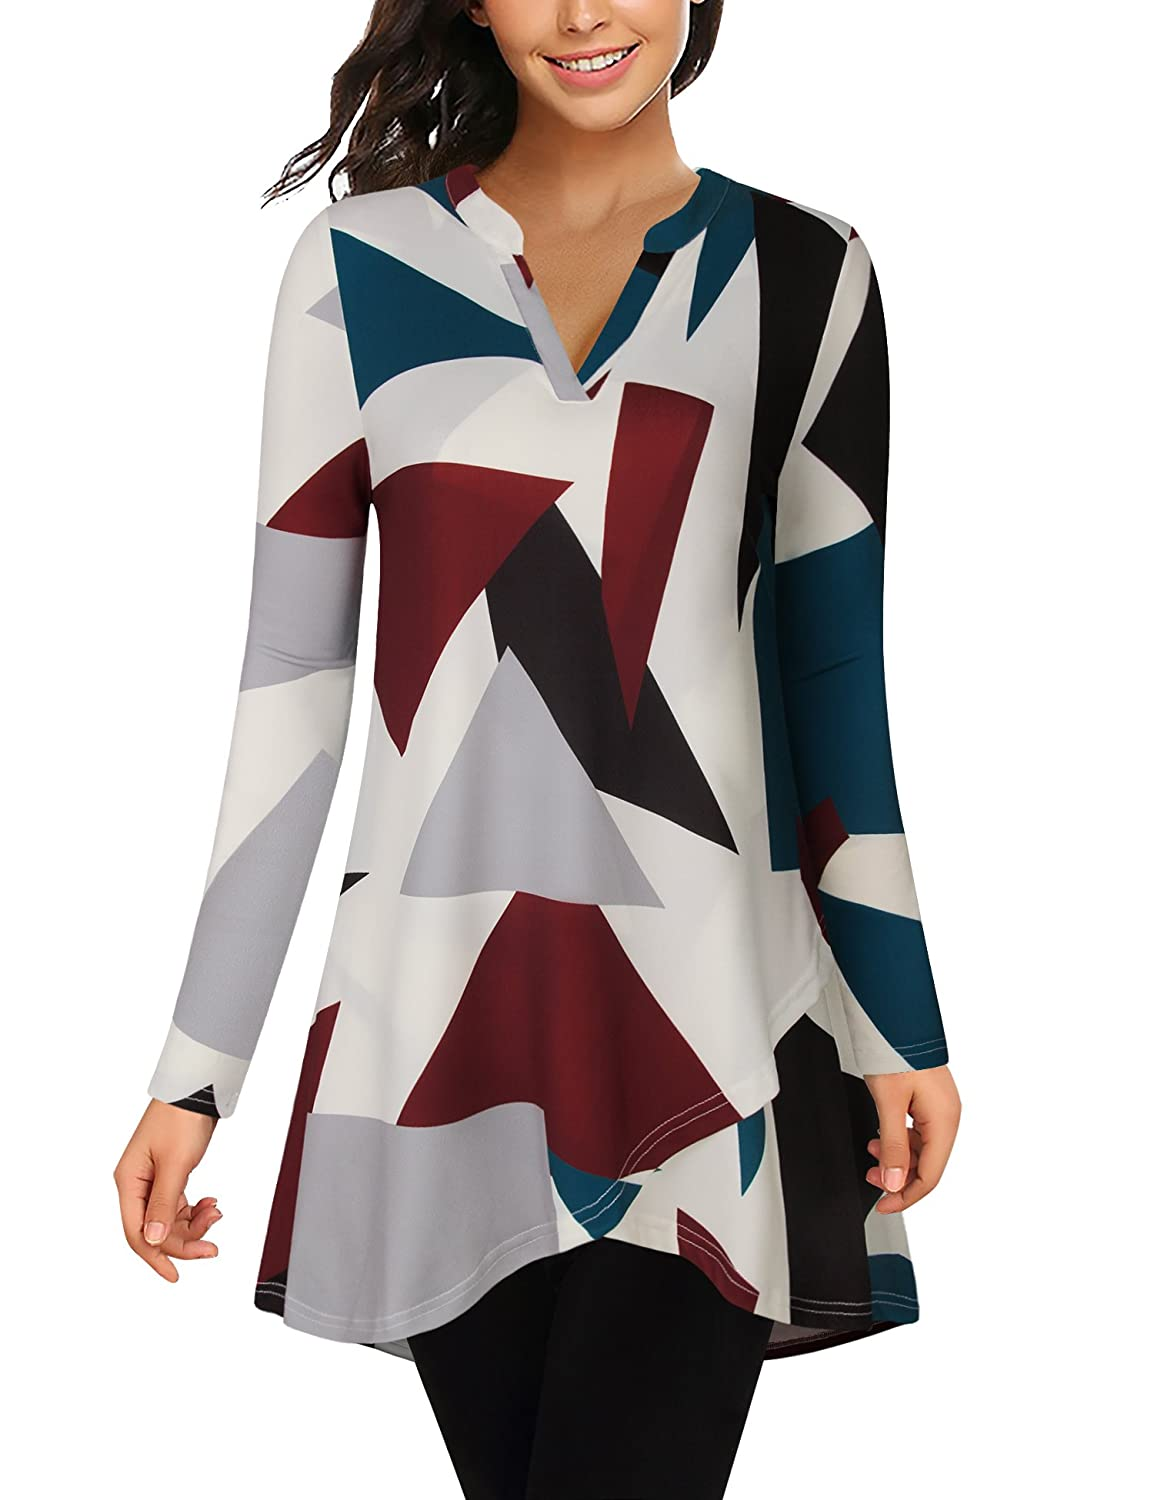 Bebonnie Printed Tunic Tops Long Sleeve Notch Neck A Line Casual Layered Tunic Shirts